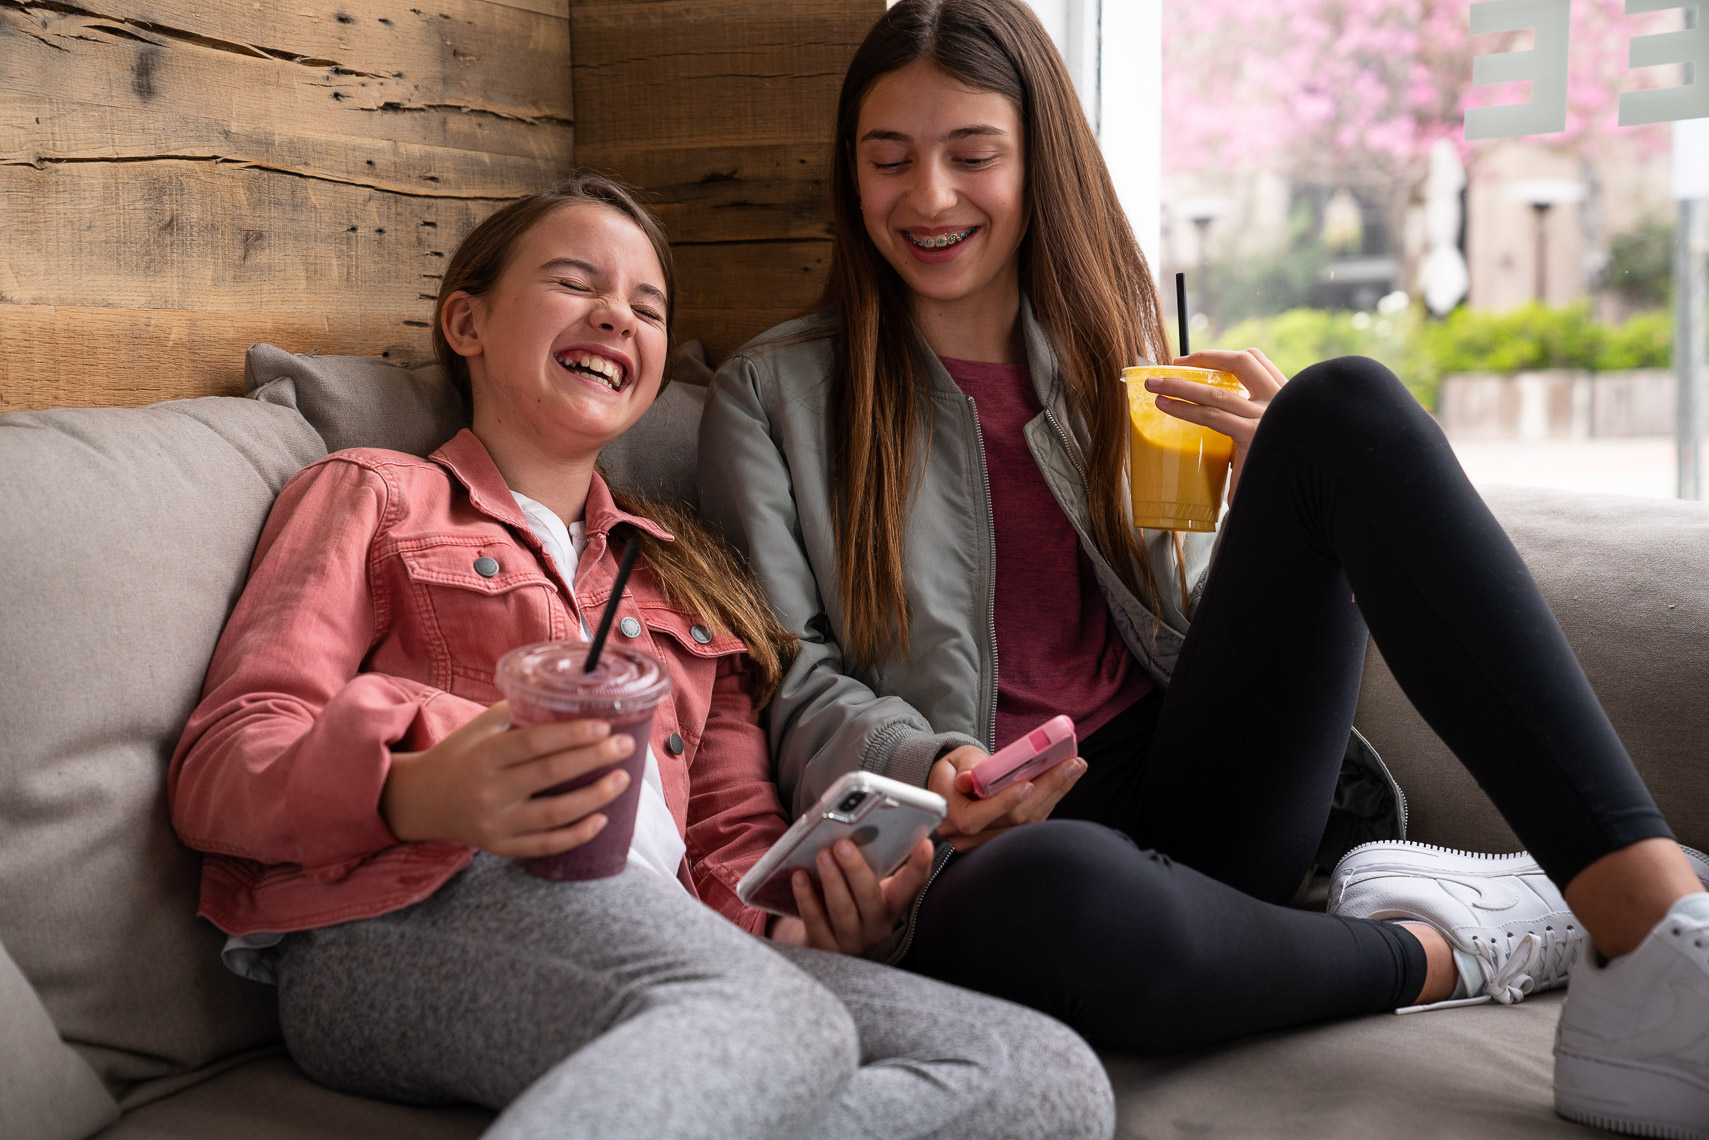 Avast - Tweens in Cafe on Smartphones